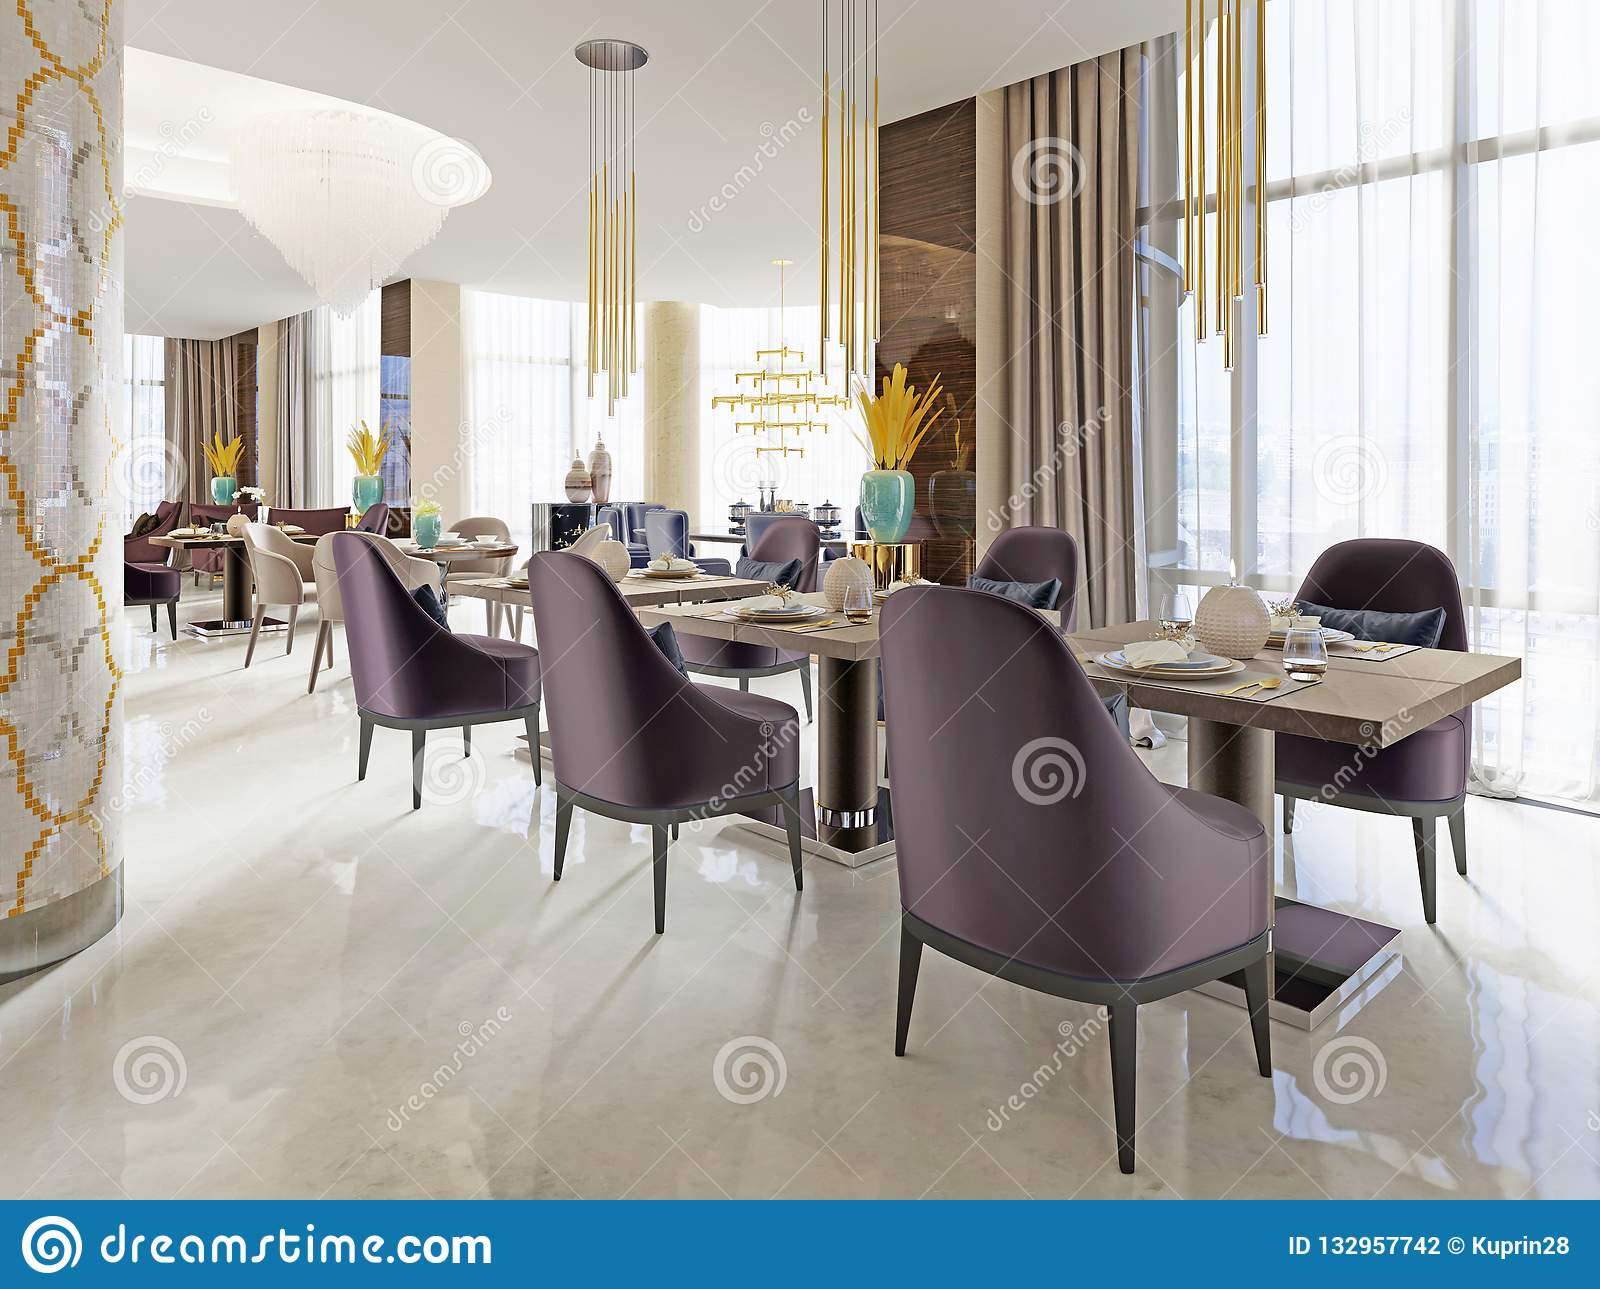 The Luxurious Restaurant In The Hotel Has A Modern Interior Design Soft Armchairs And Served Tables Stock Illustration Illustration Of Chair Couch 132957742